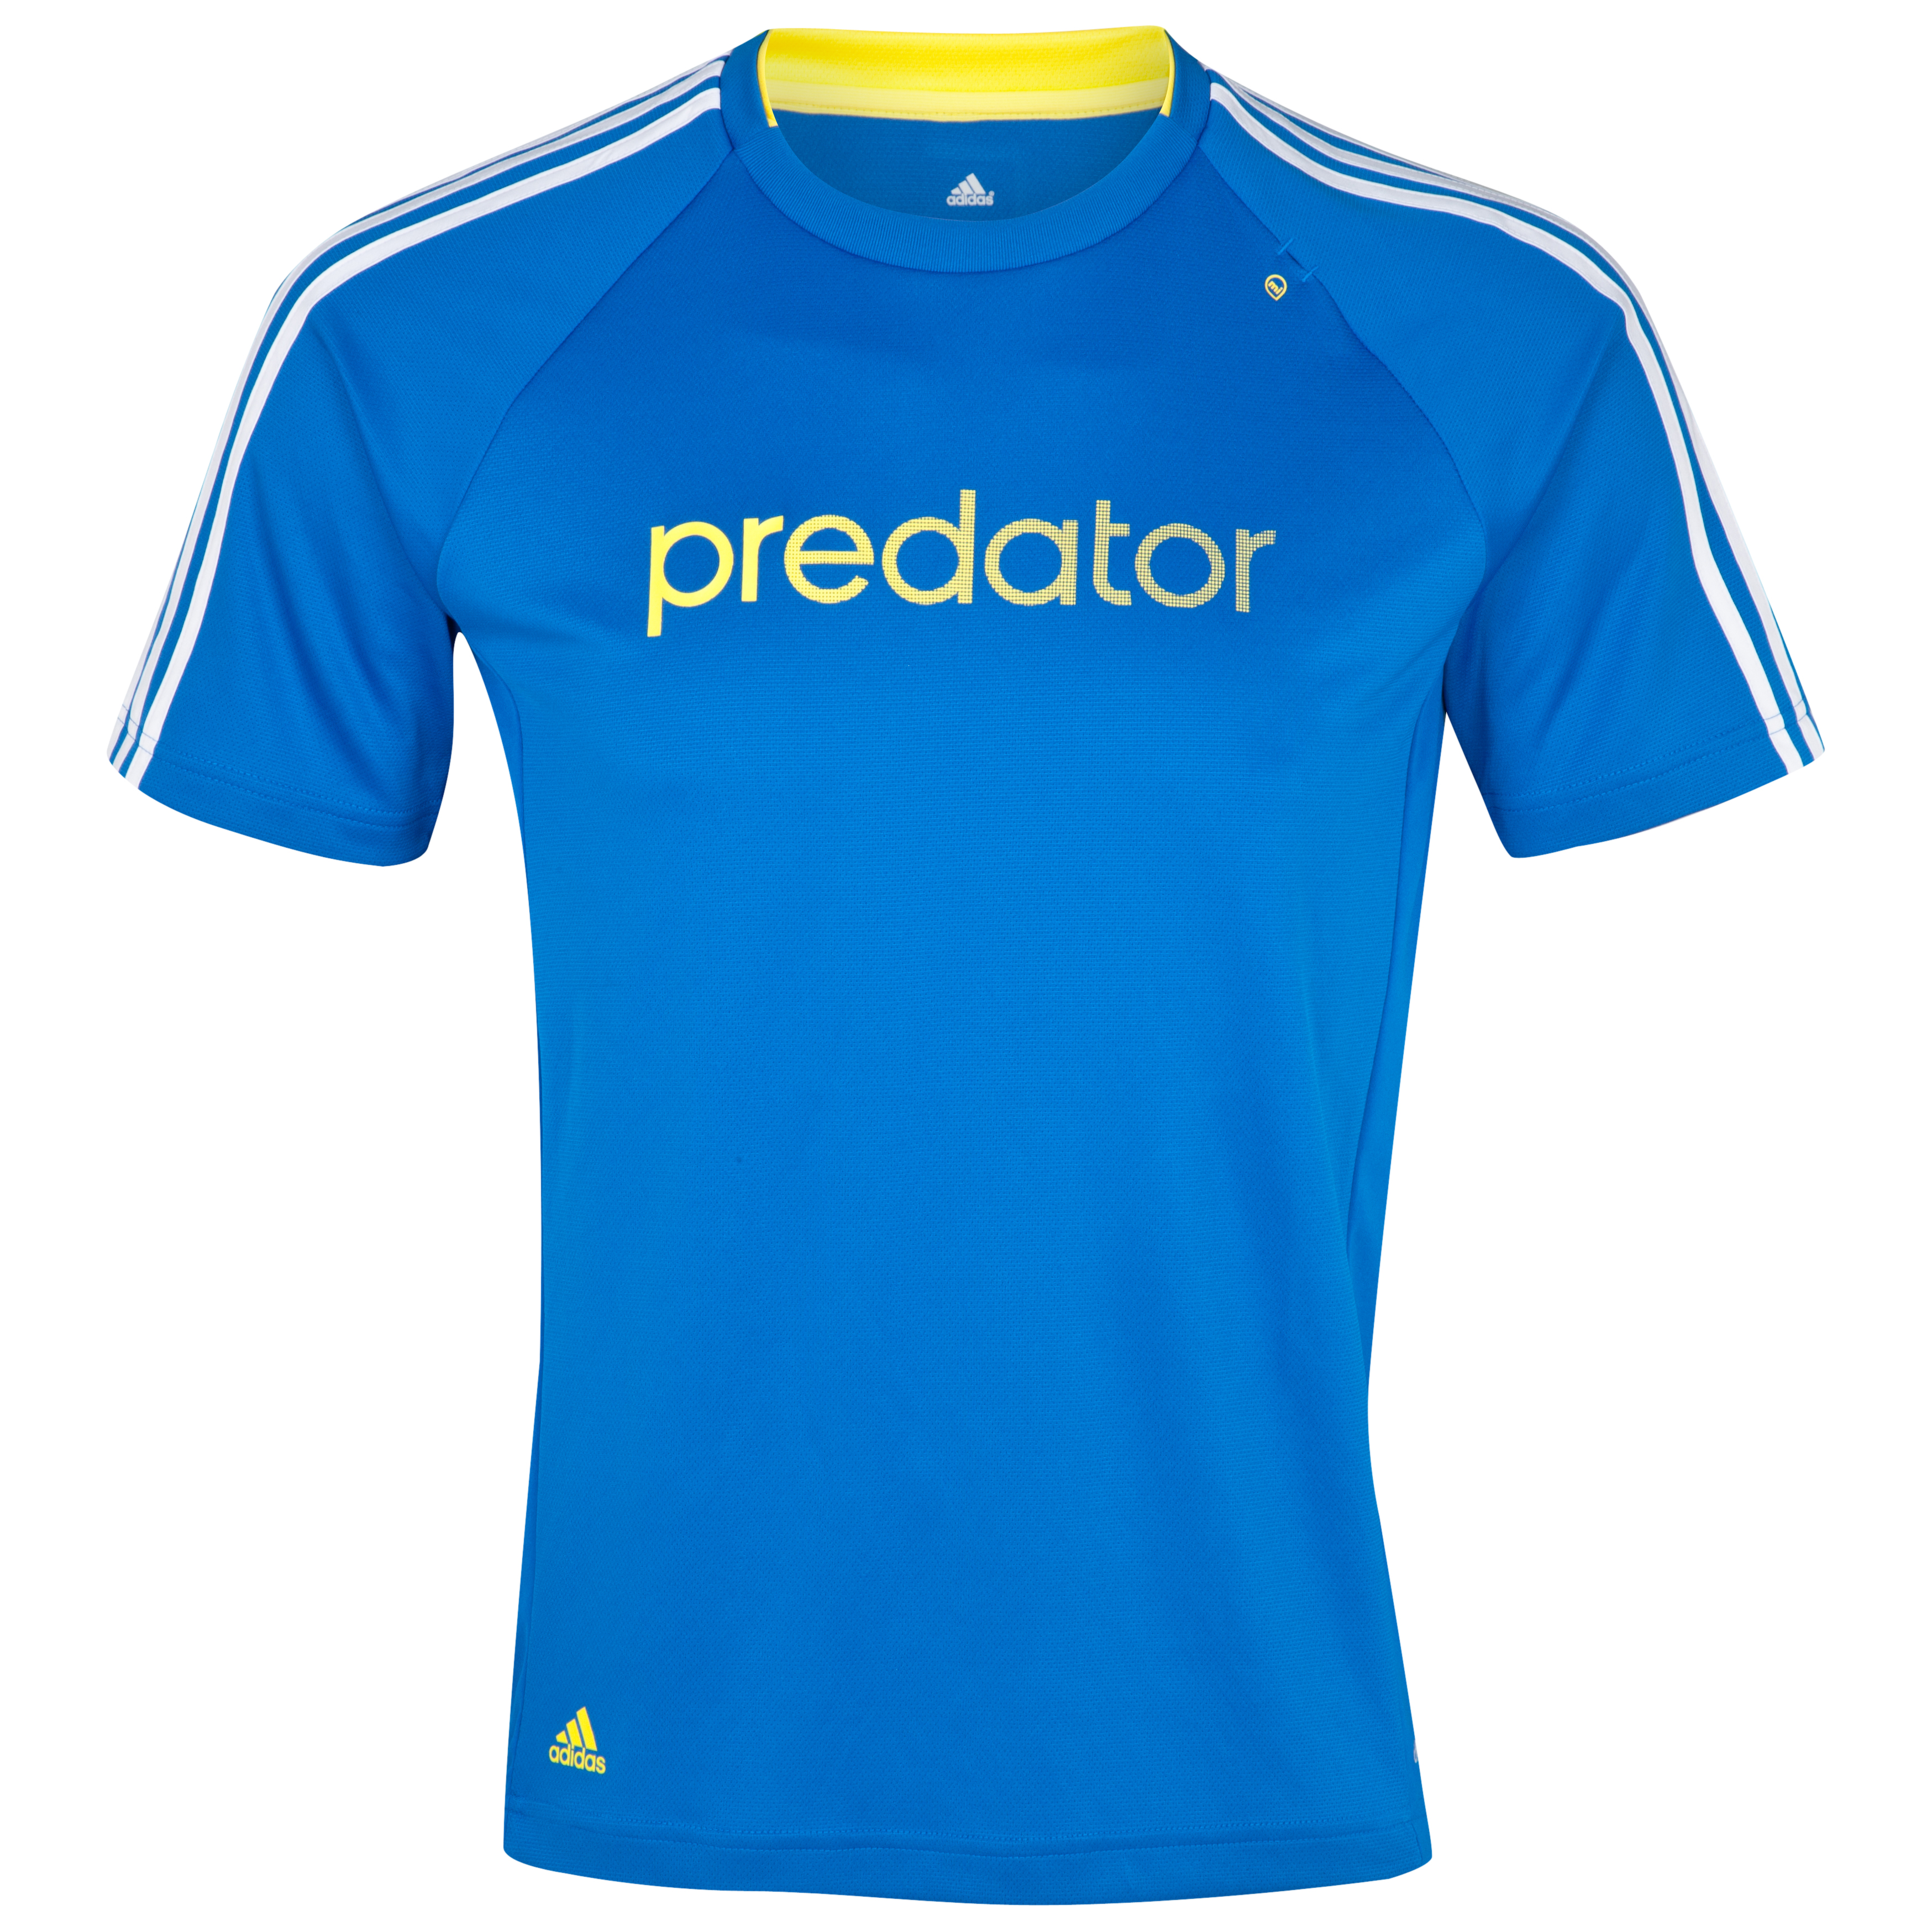 adidas Predator Climalite Tee - Prime Blue S12/White/Vivid Yellow